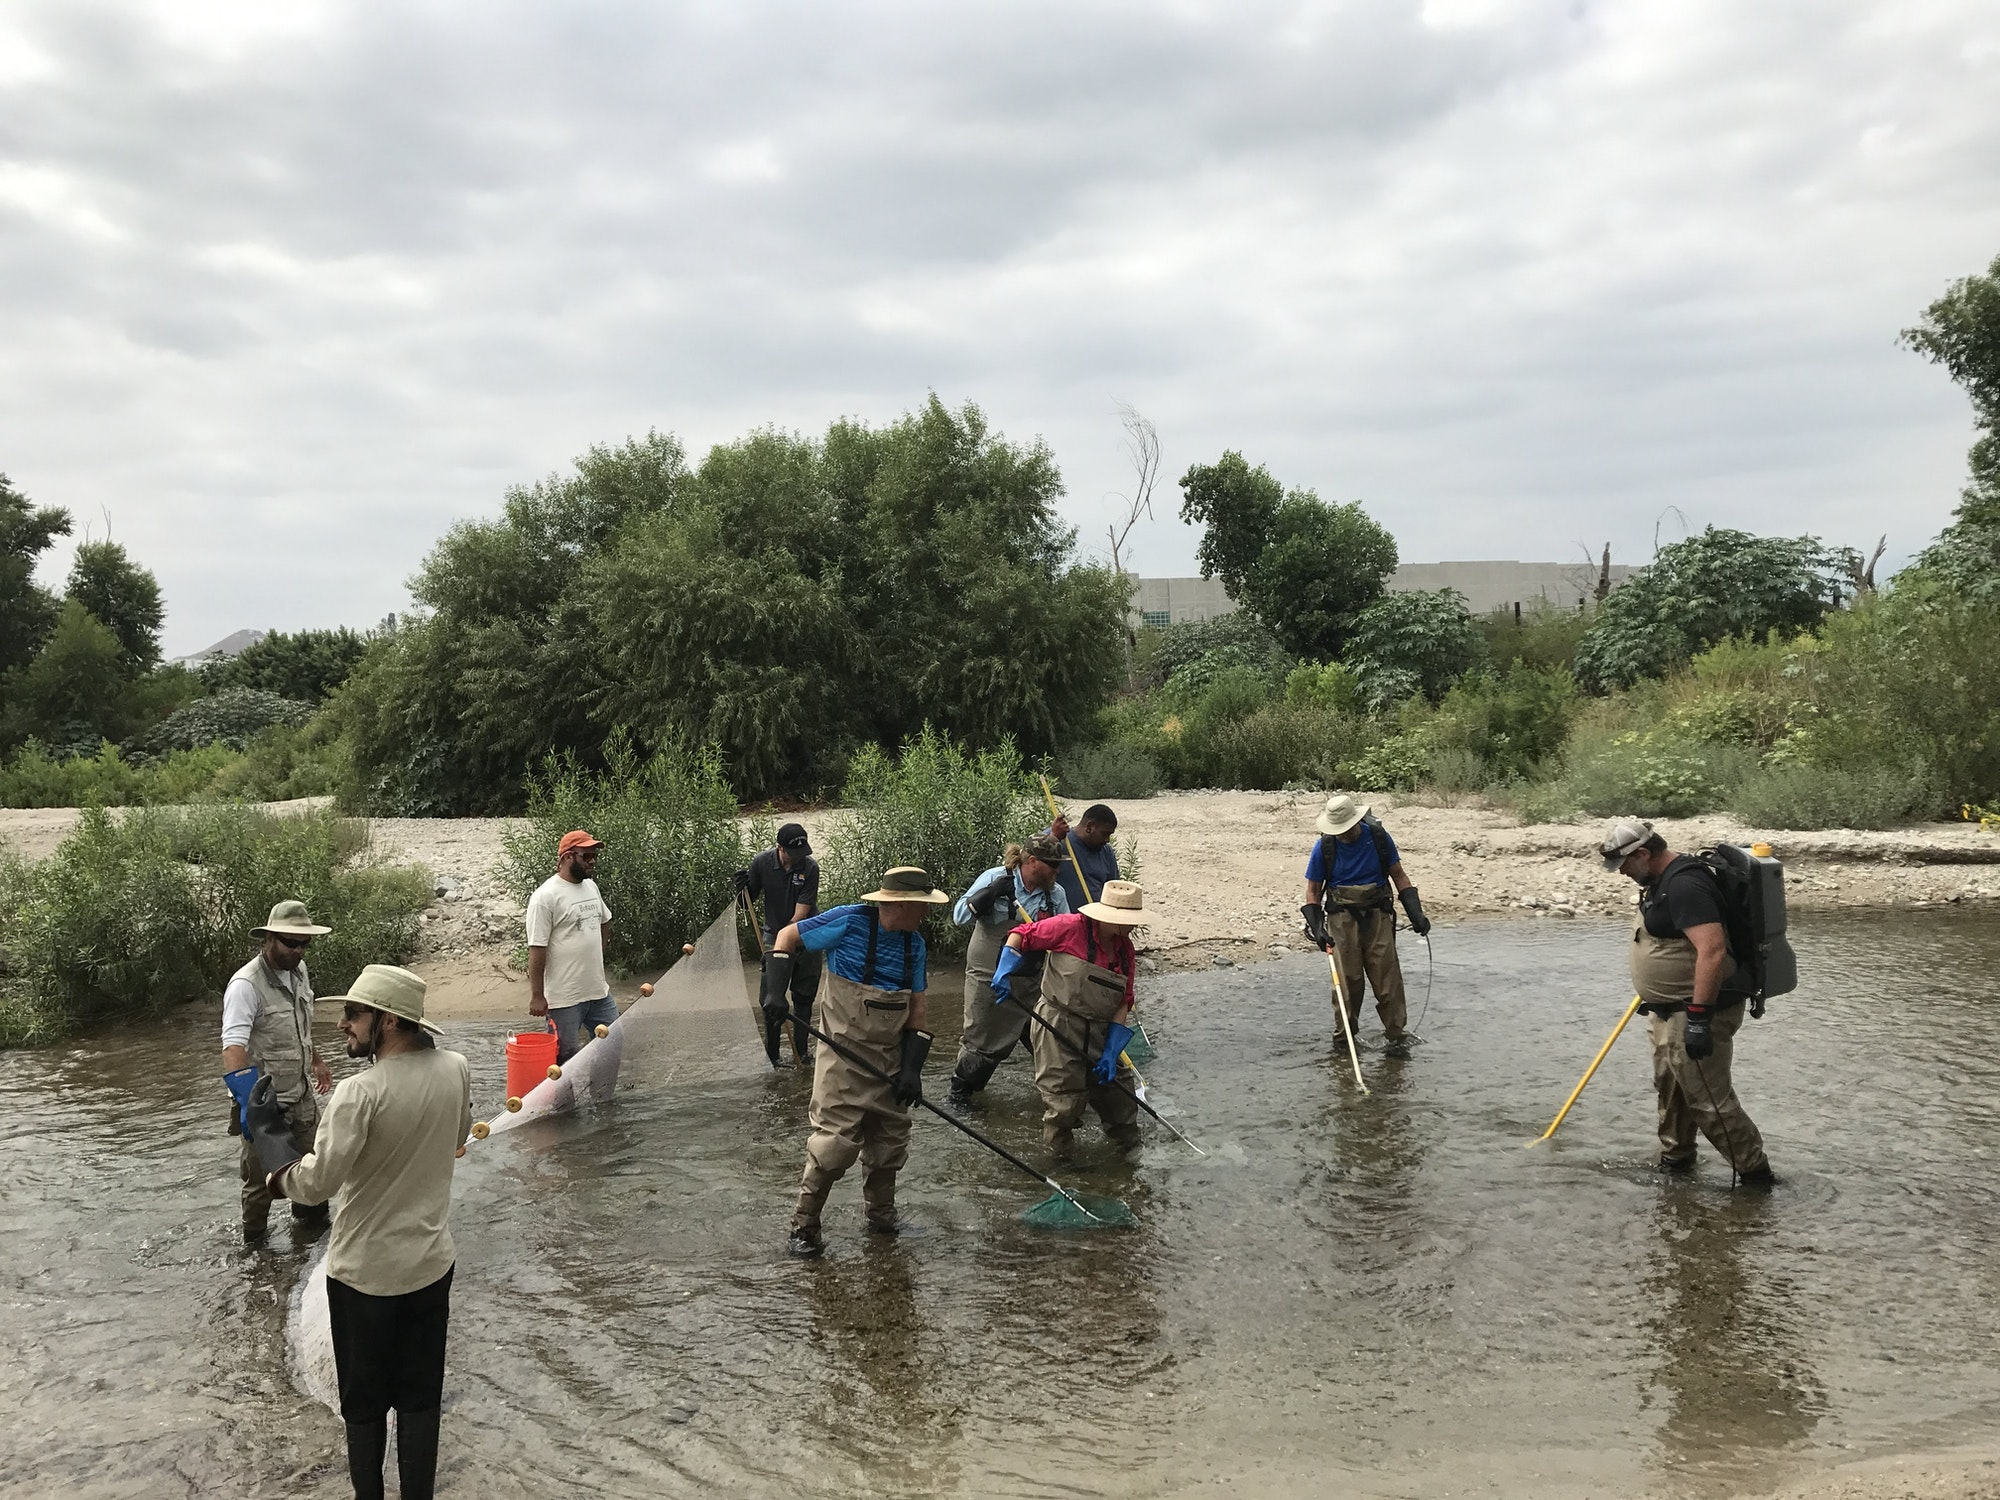 RCRCD staff and other field techs working in the river monitoring aquatic species.